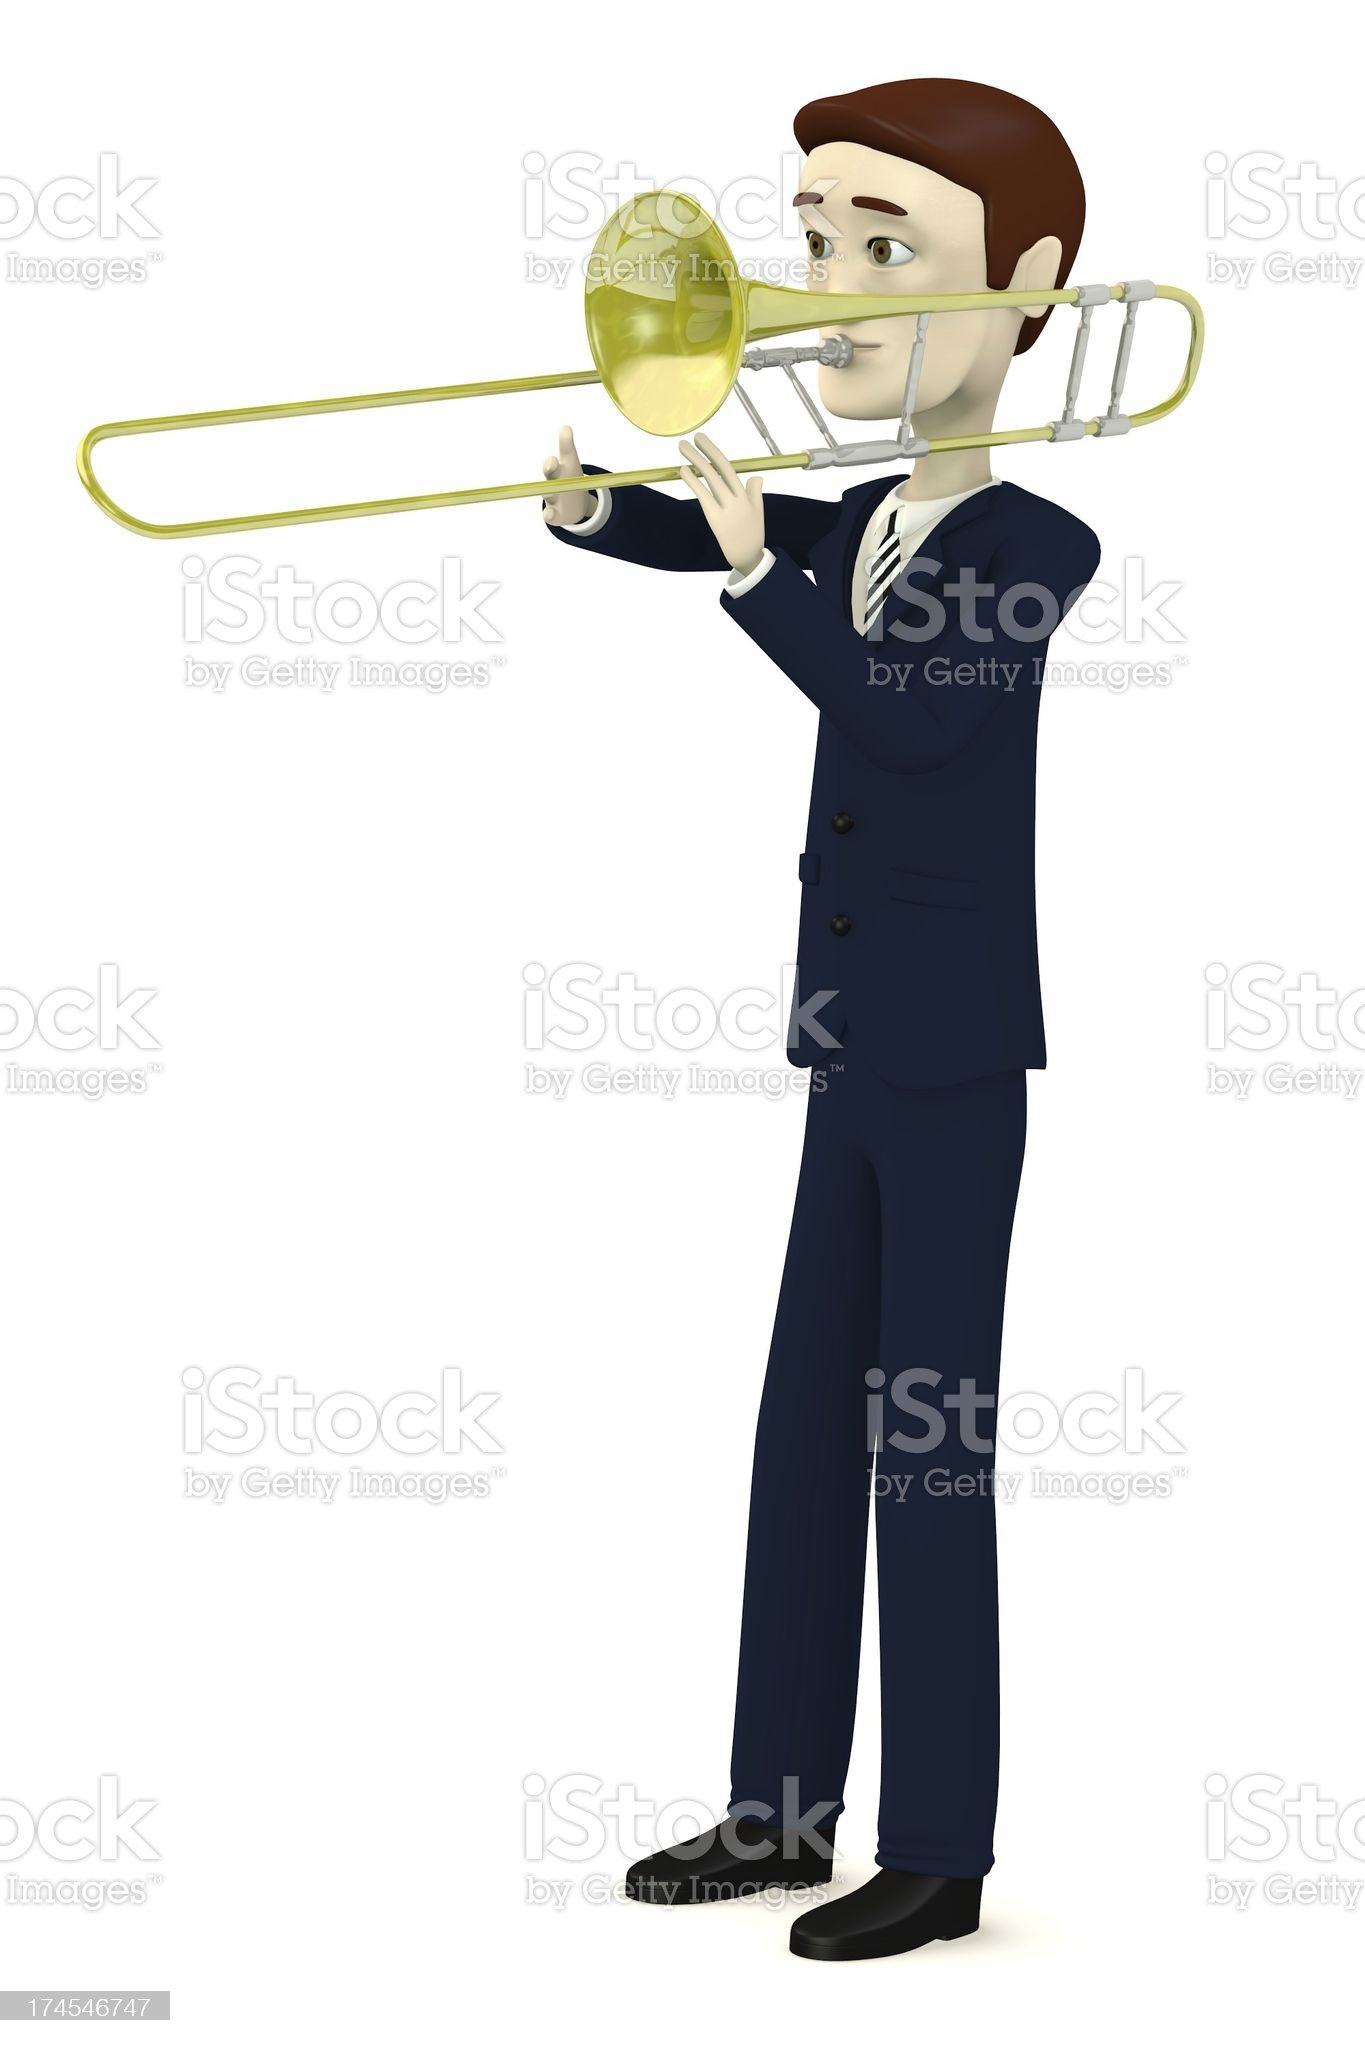 cartoon character with trumpet royalty-free stock vector art